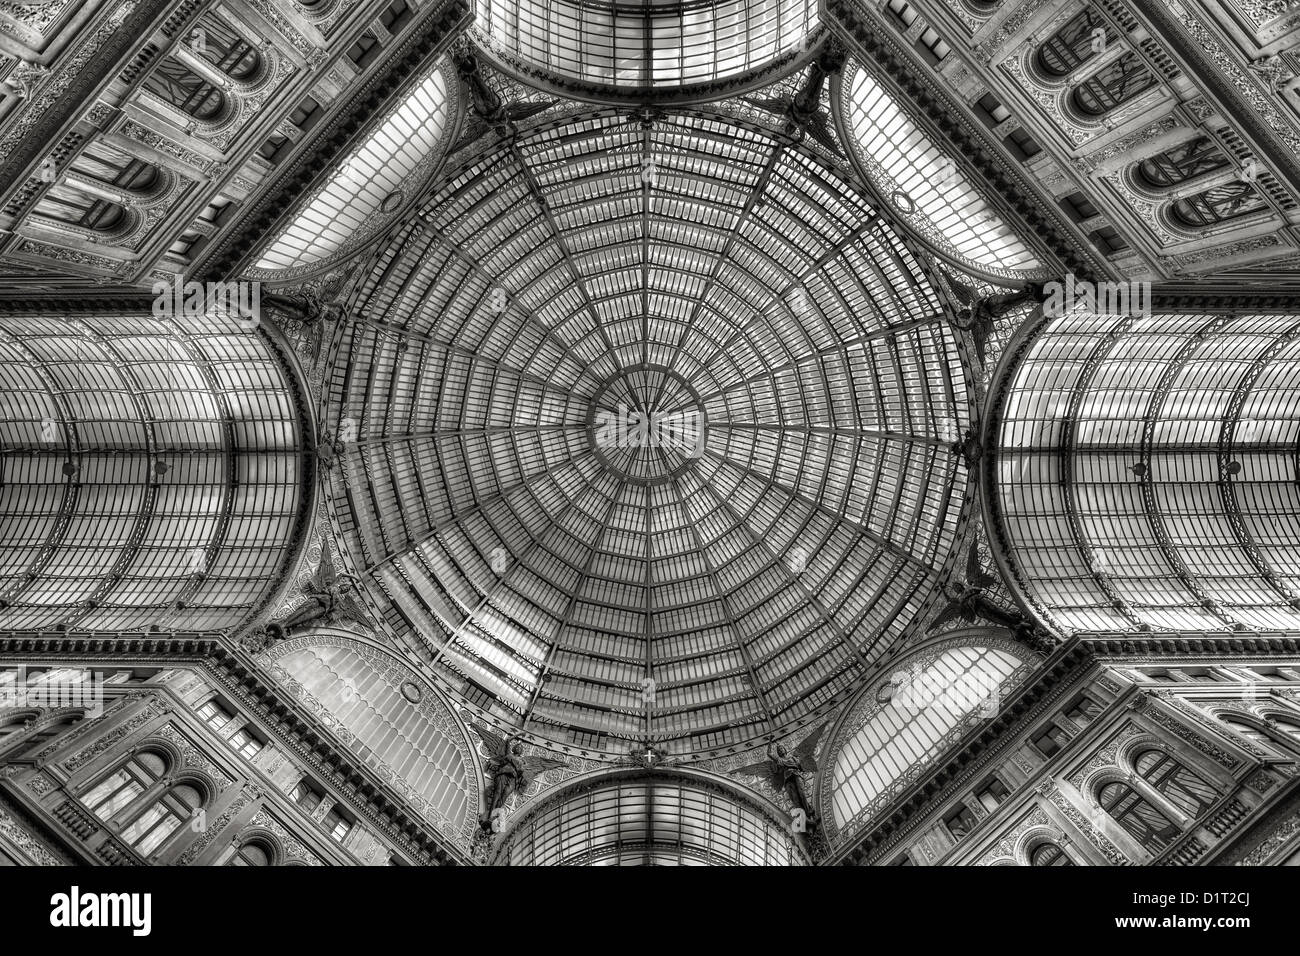 Iron and glass domed roof Stock Photo